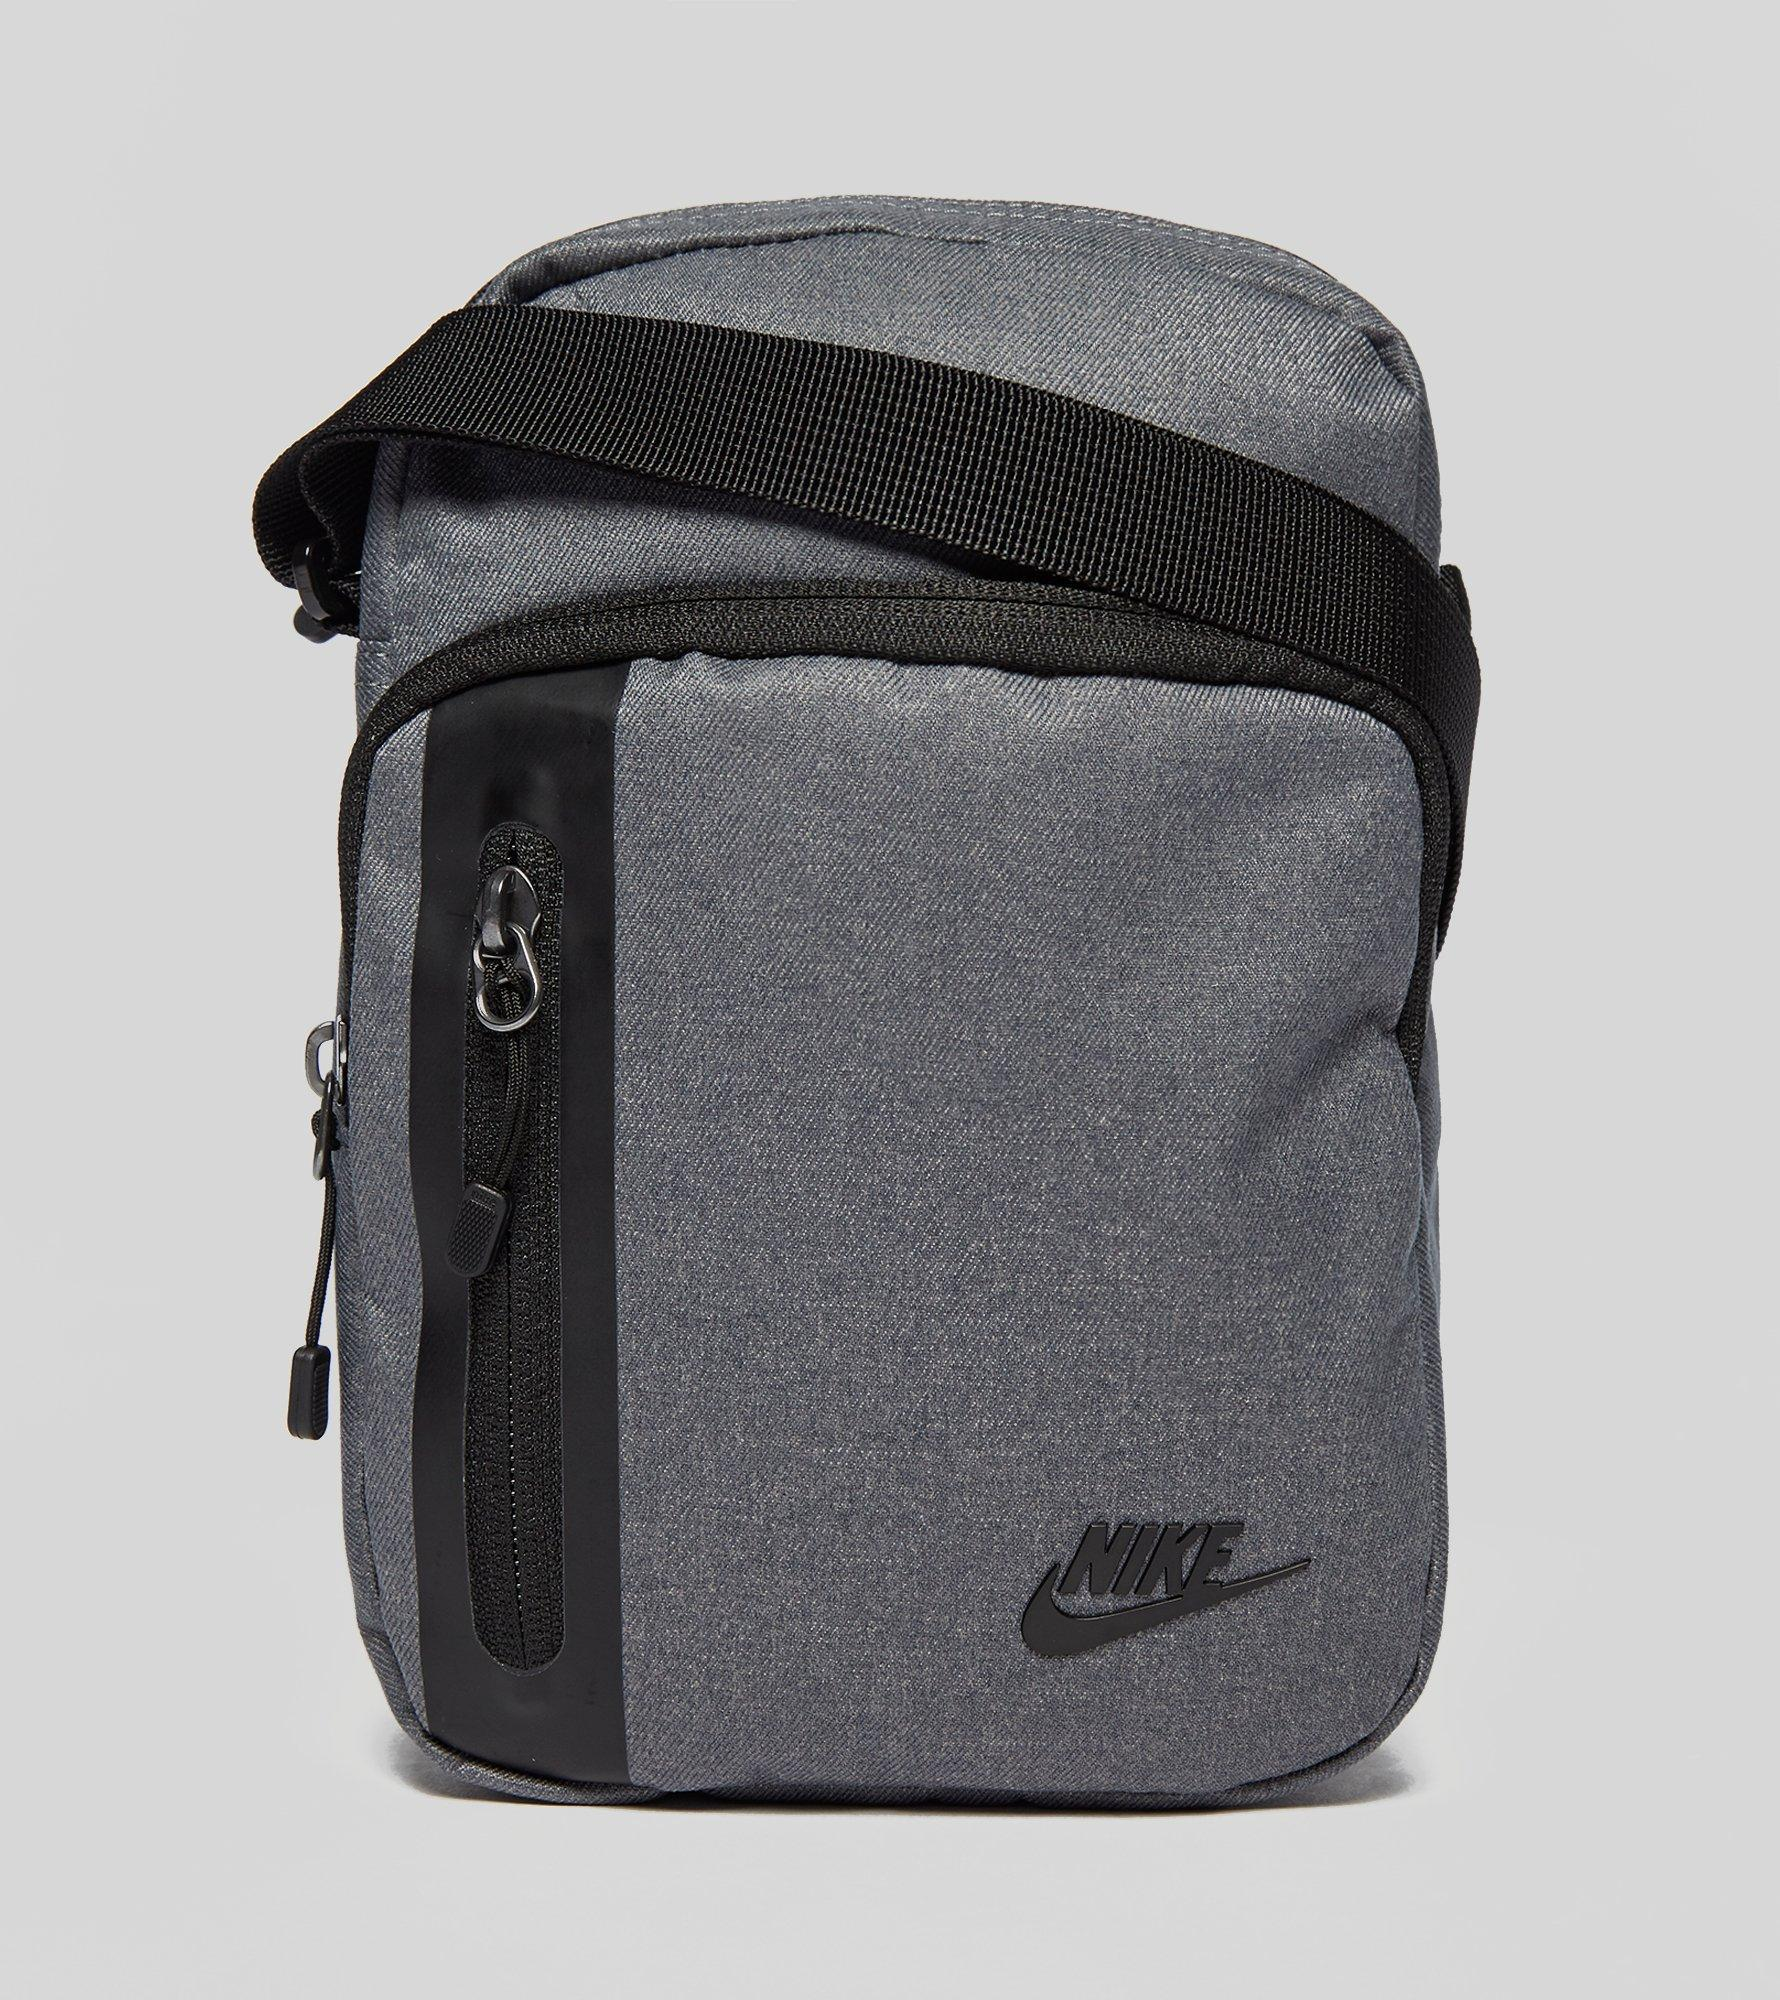 Nike Core Small Crossbody Bag in Gray for Men - Lyst